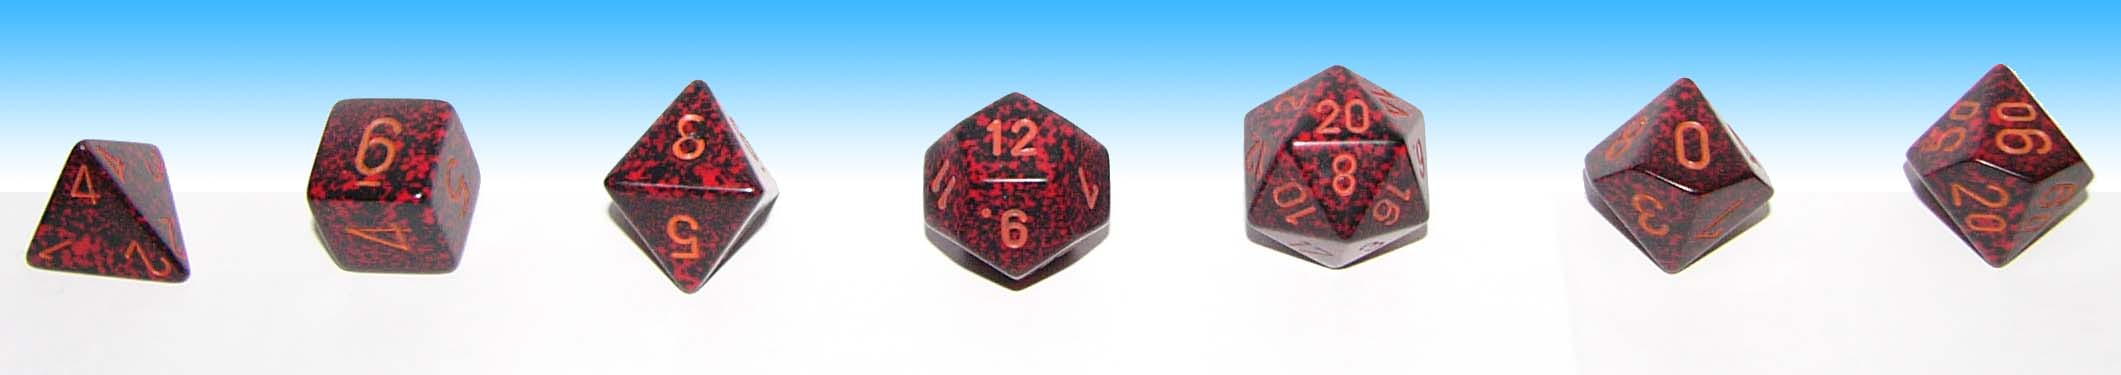 D&D dice set